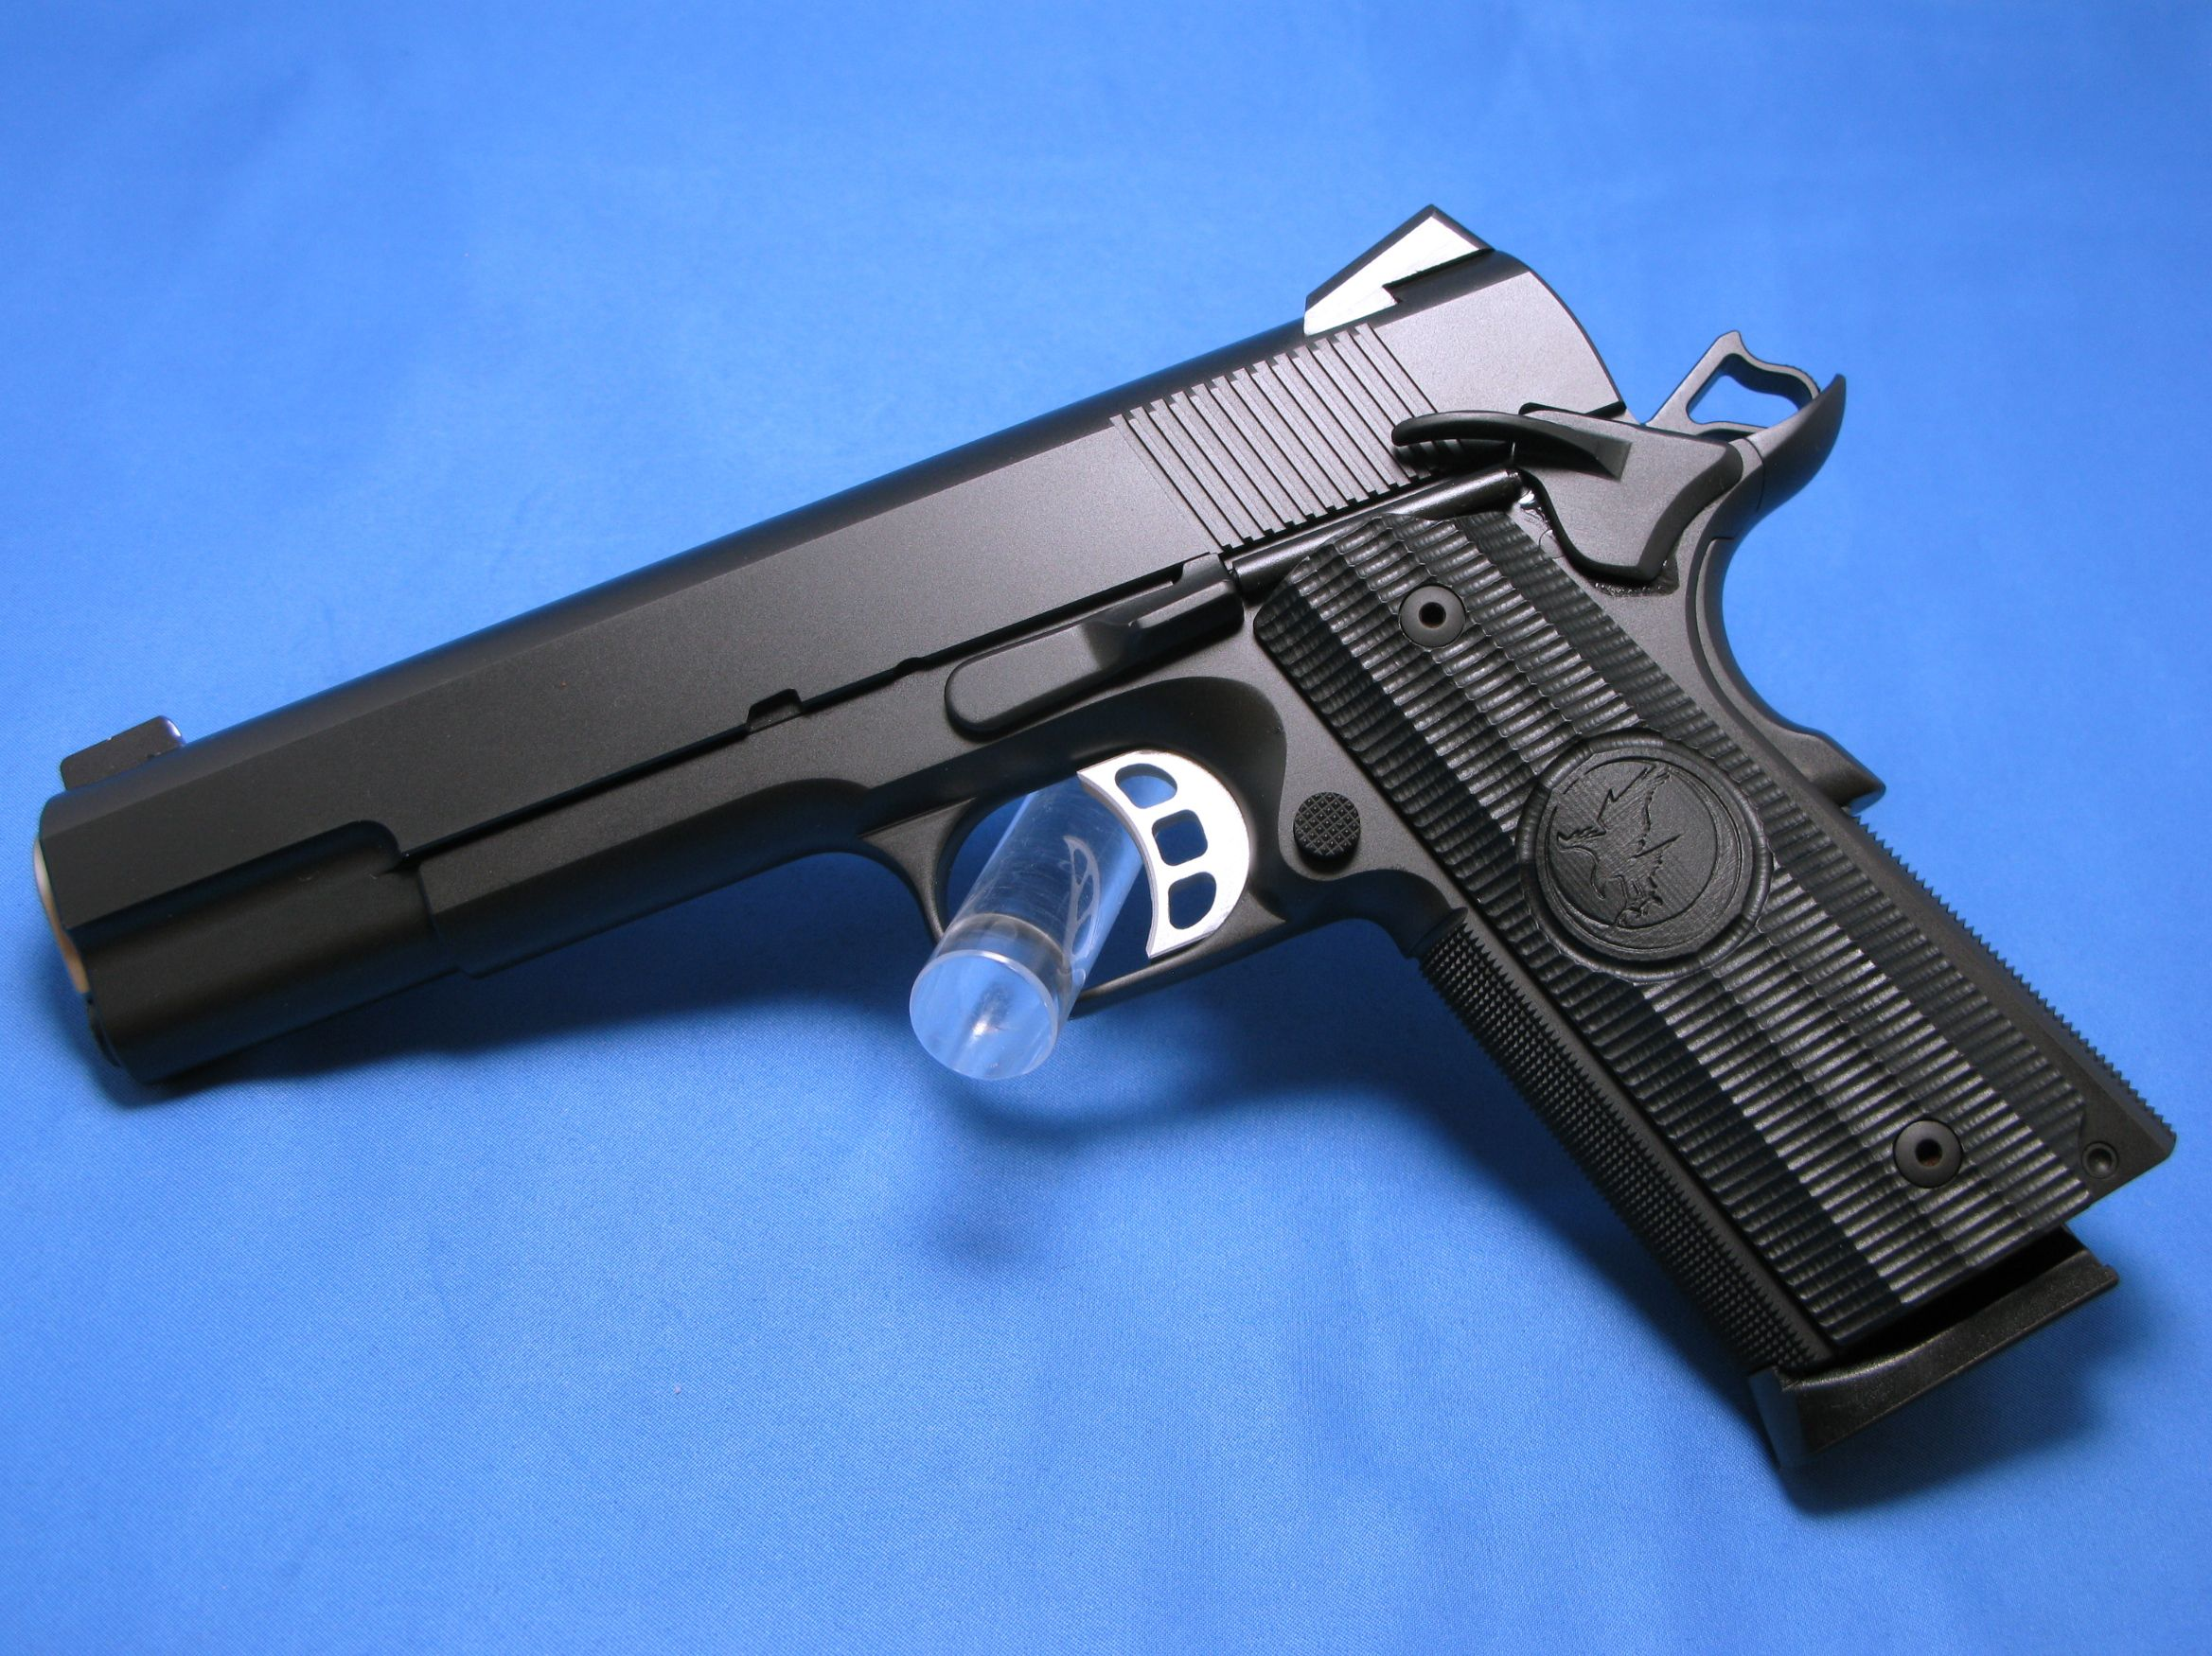 Nighthawk GRP W/Upgrades | Concealed Carry and Duty Weapons